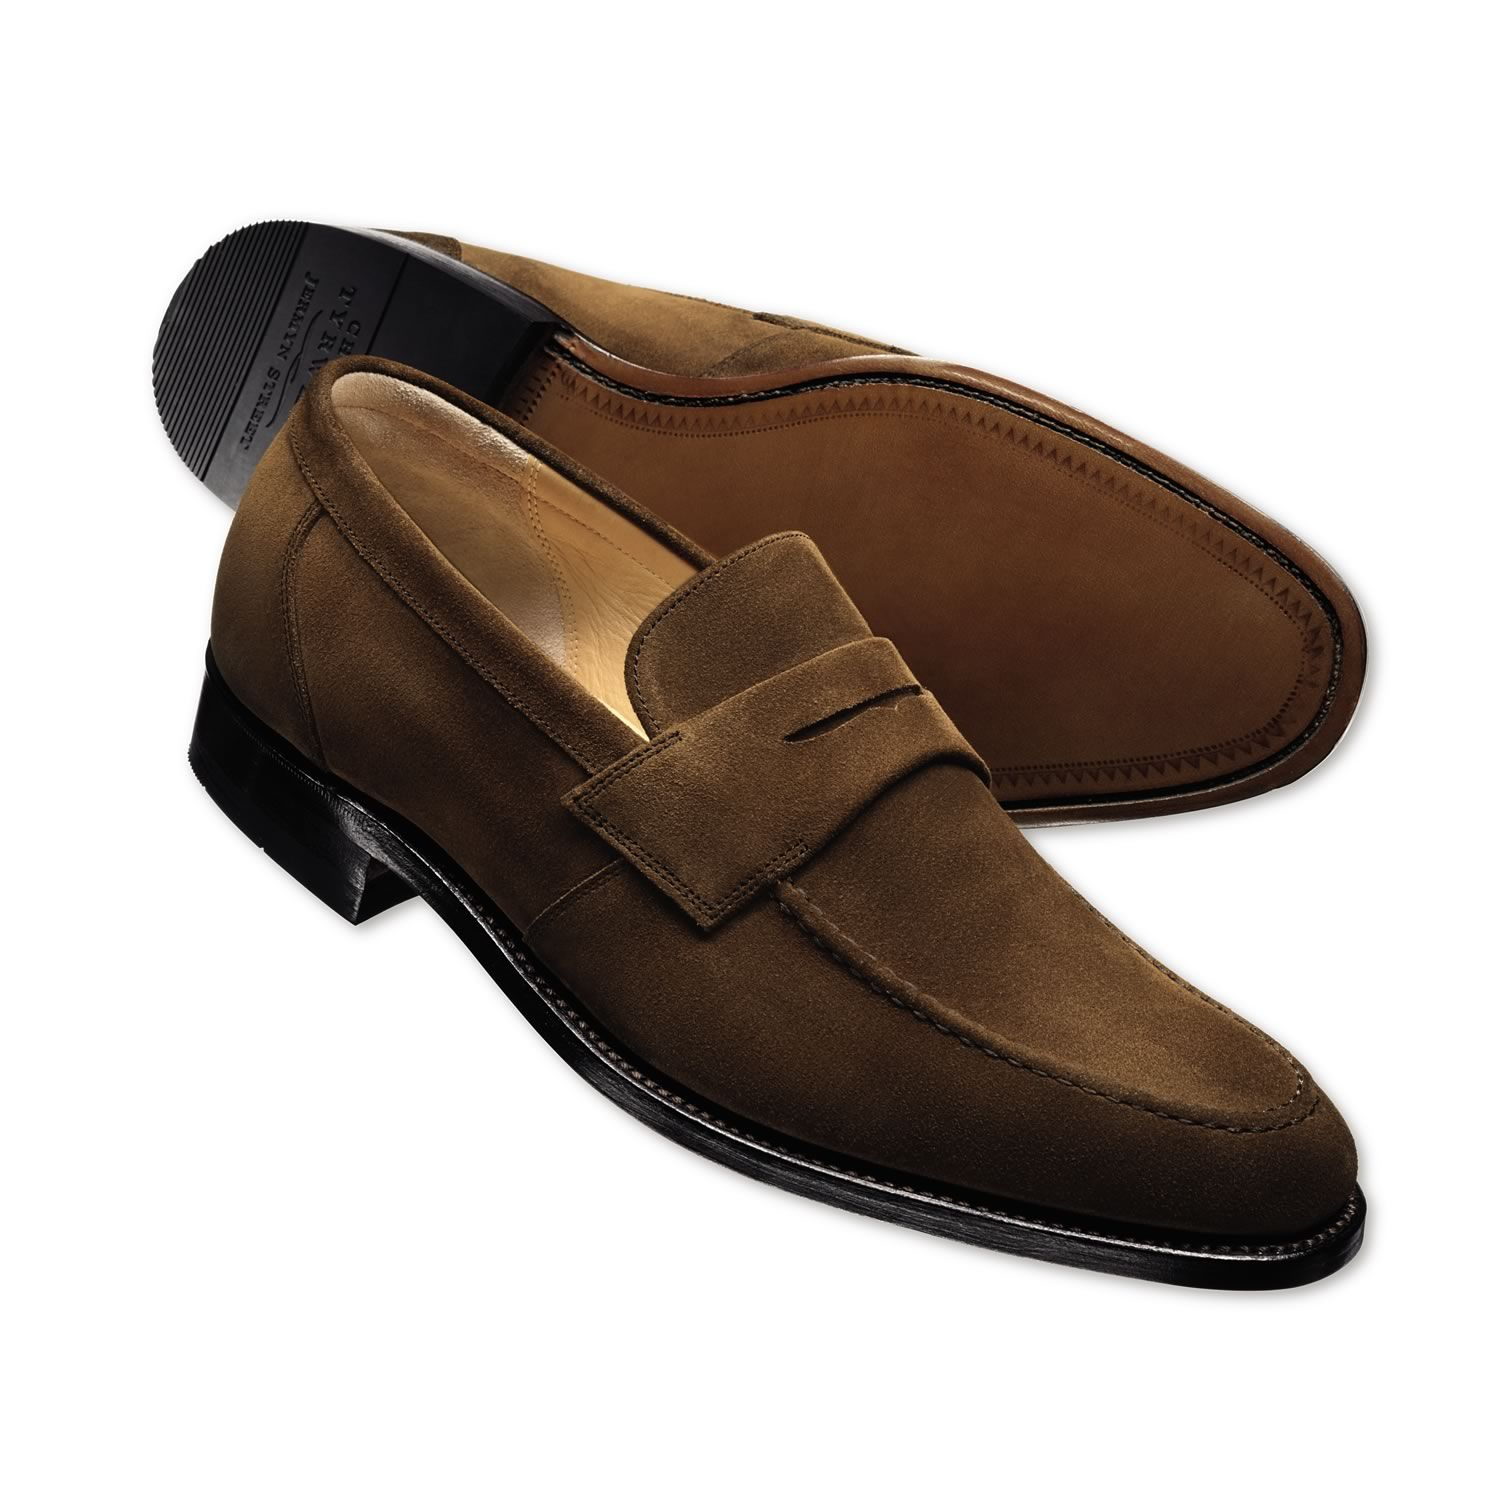 Brown suede loafers | Mens business shoes from Charles ...